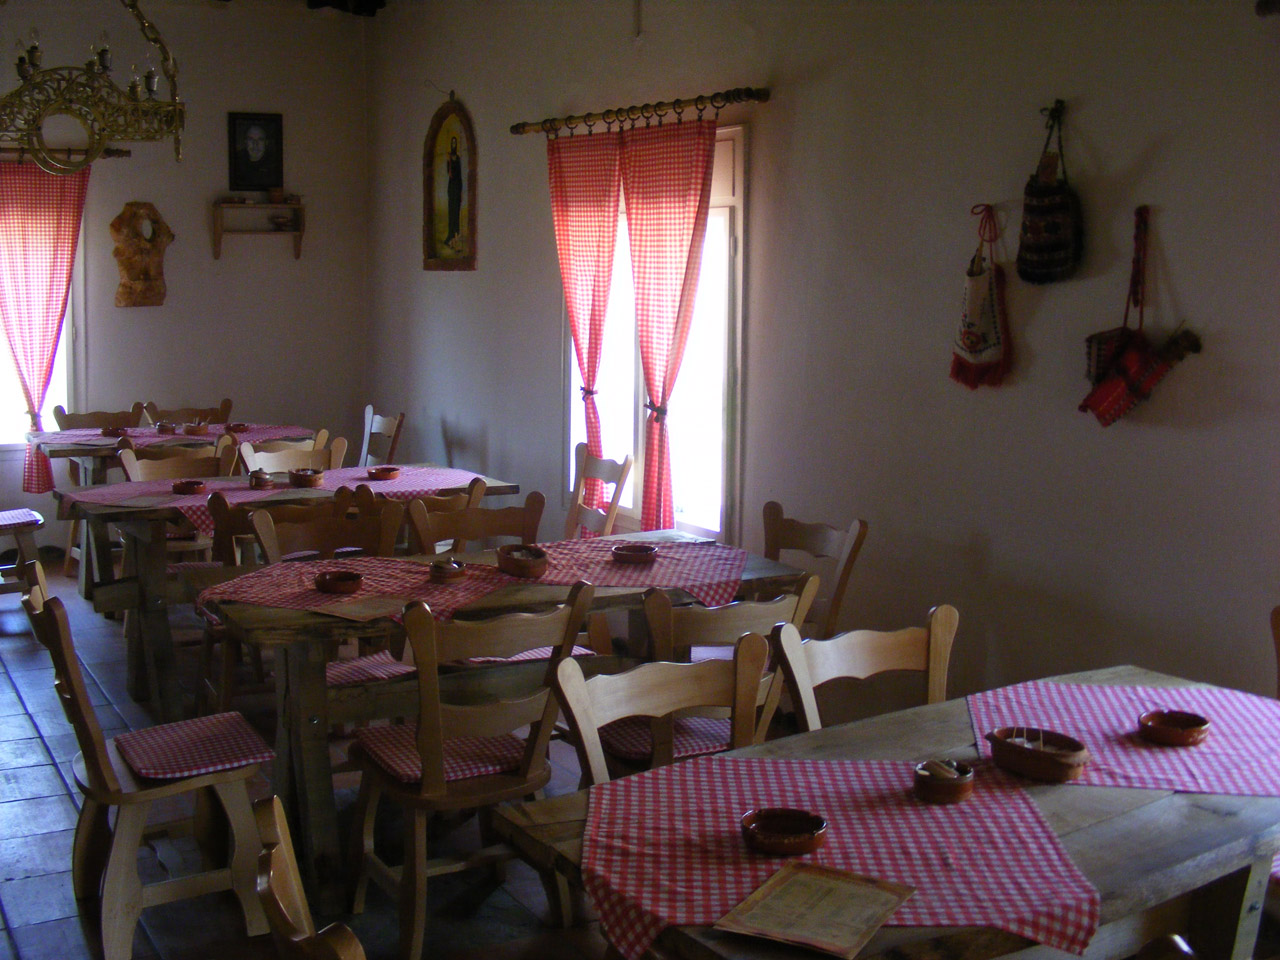 VILA BEBA Motels Zajecar - Photo 5